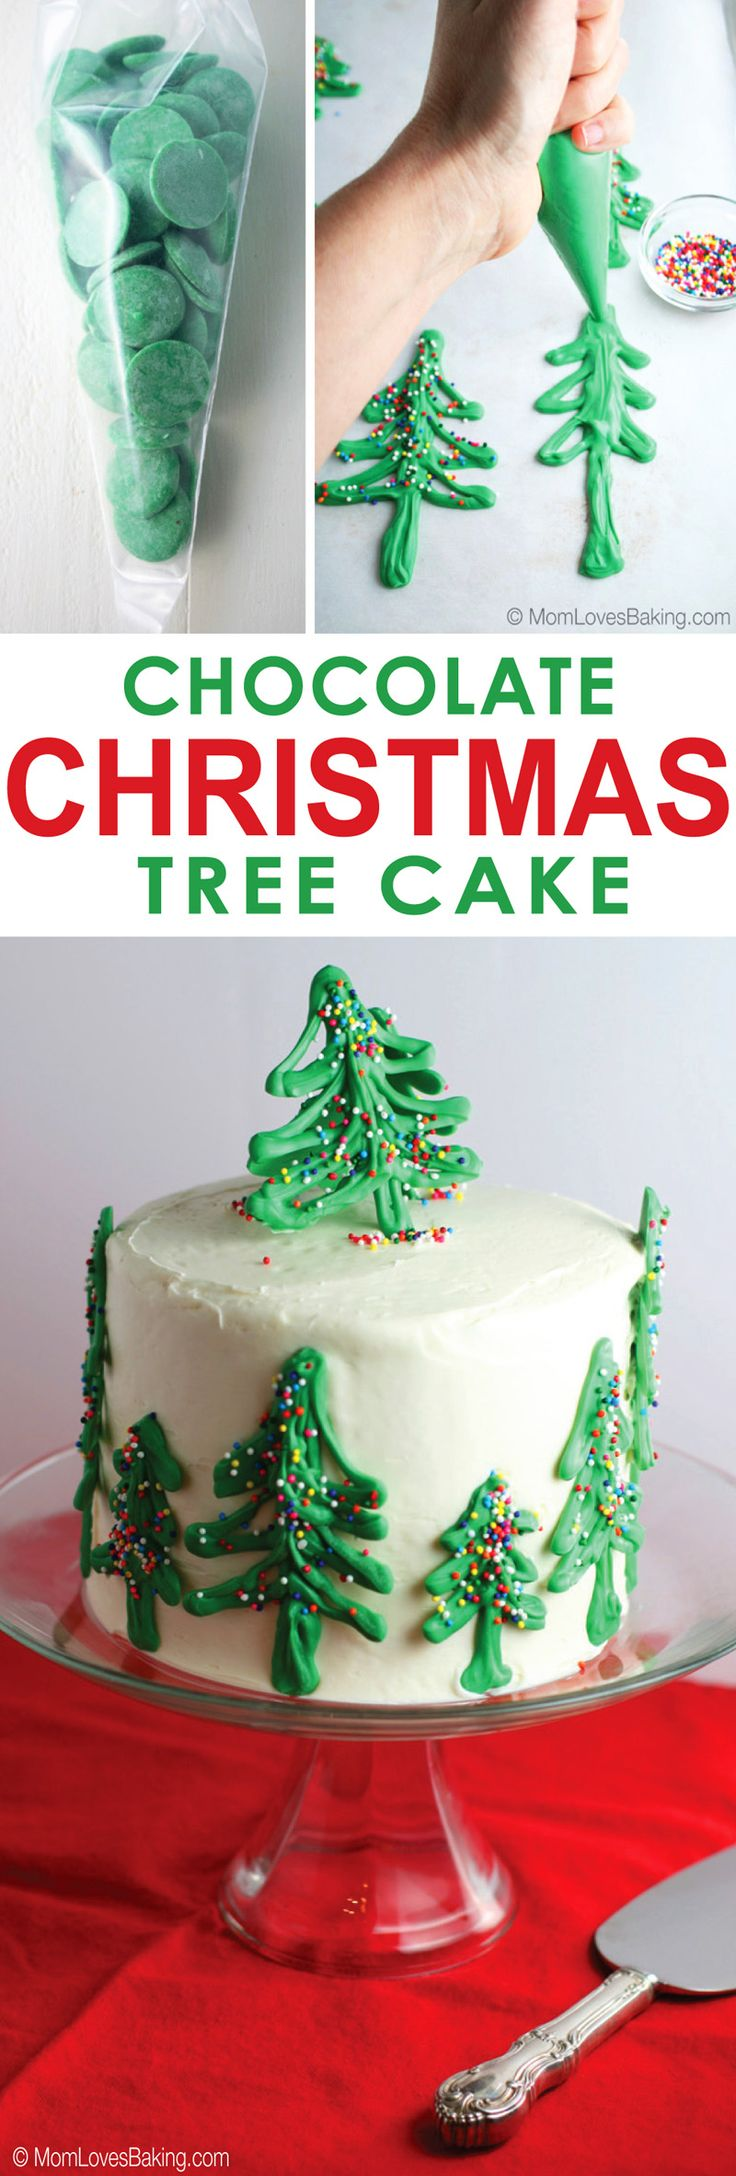 Need a fabulous dessert for the Christmas party? How about this Chocolate Christmas Tree Cake. It's simple to make and your friends will be so impressed! ‪#‎TheDessertDebate‬ @pillsburybaking  ‪#‎ad‬